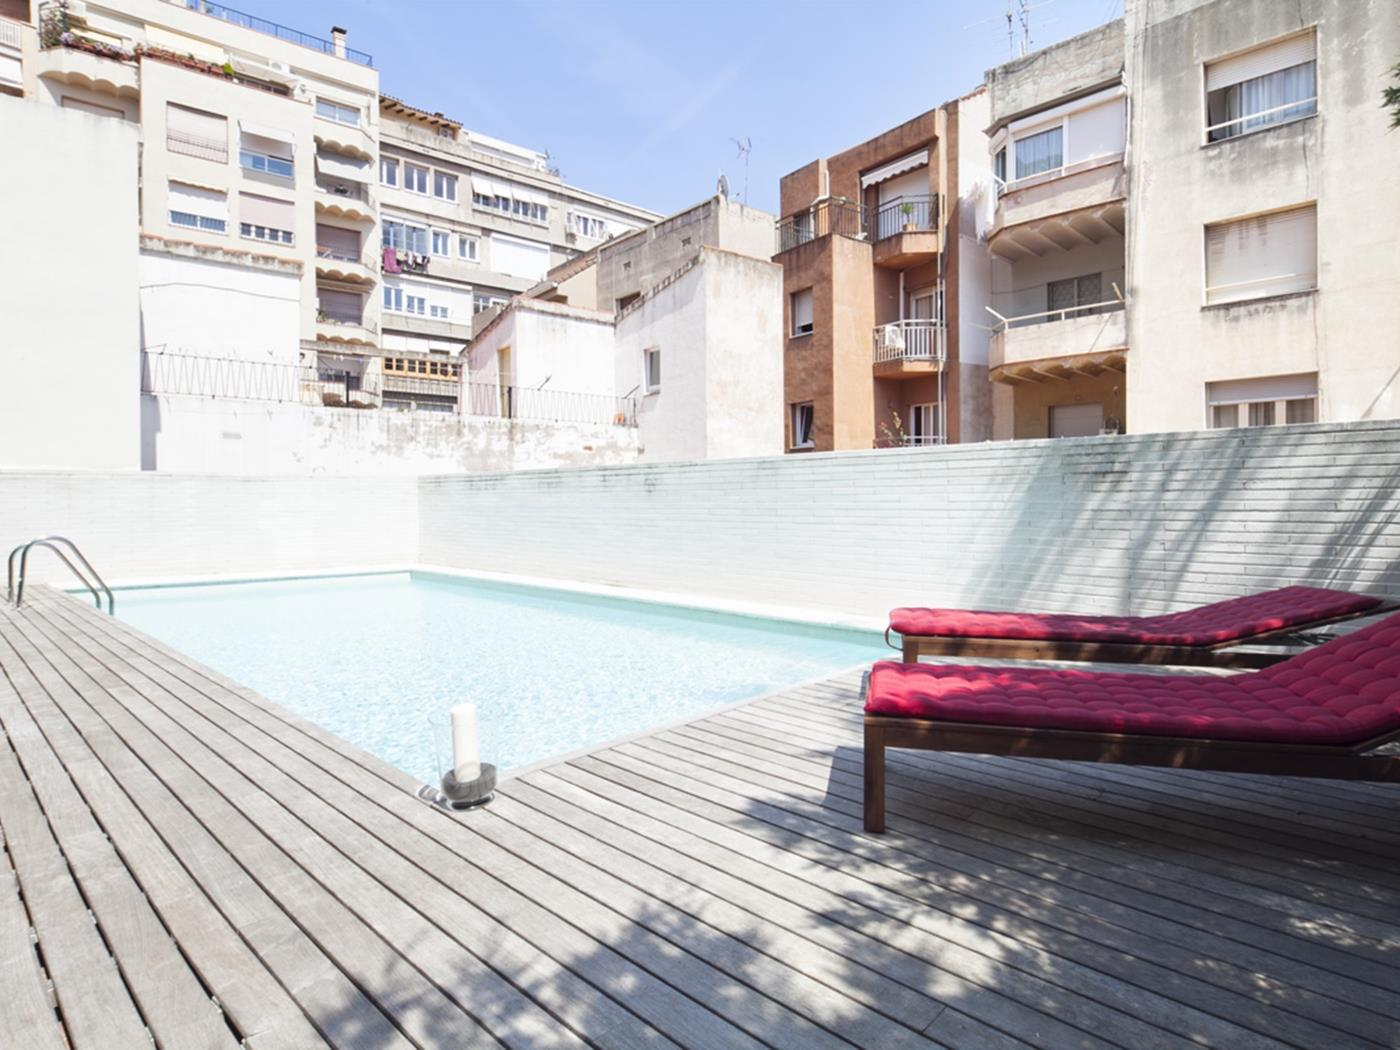 Penthouse for 8 with Pool and Terrace near Center - My Space Barcelona Aпартаменты